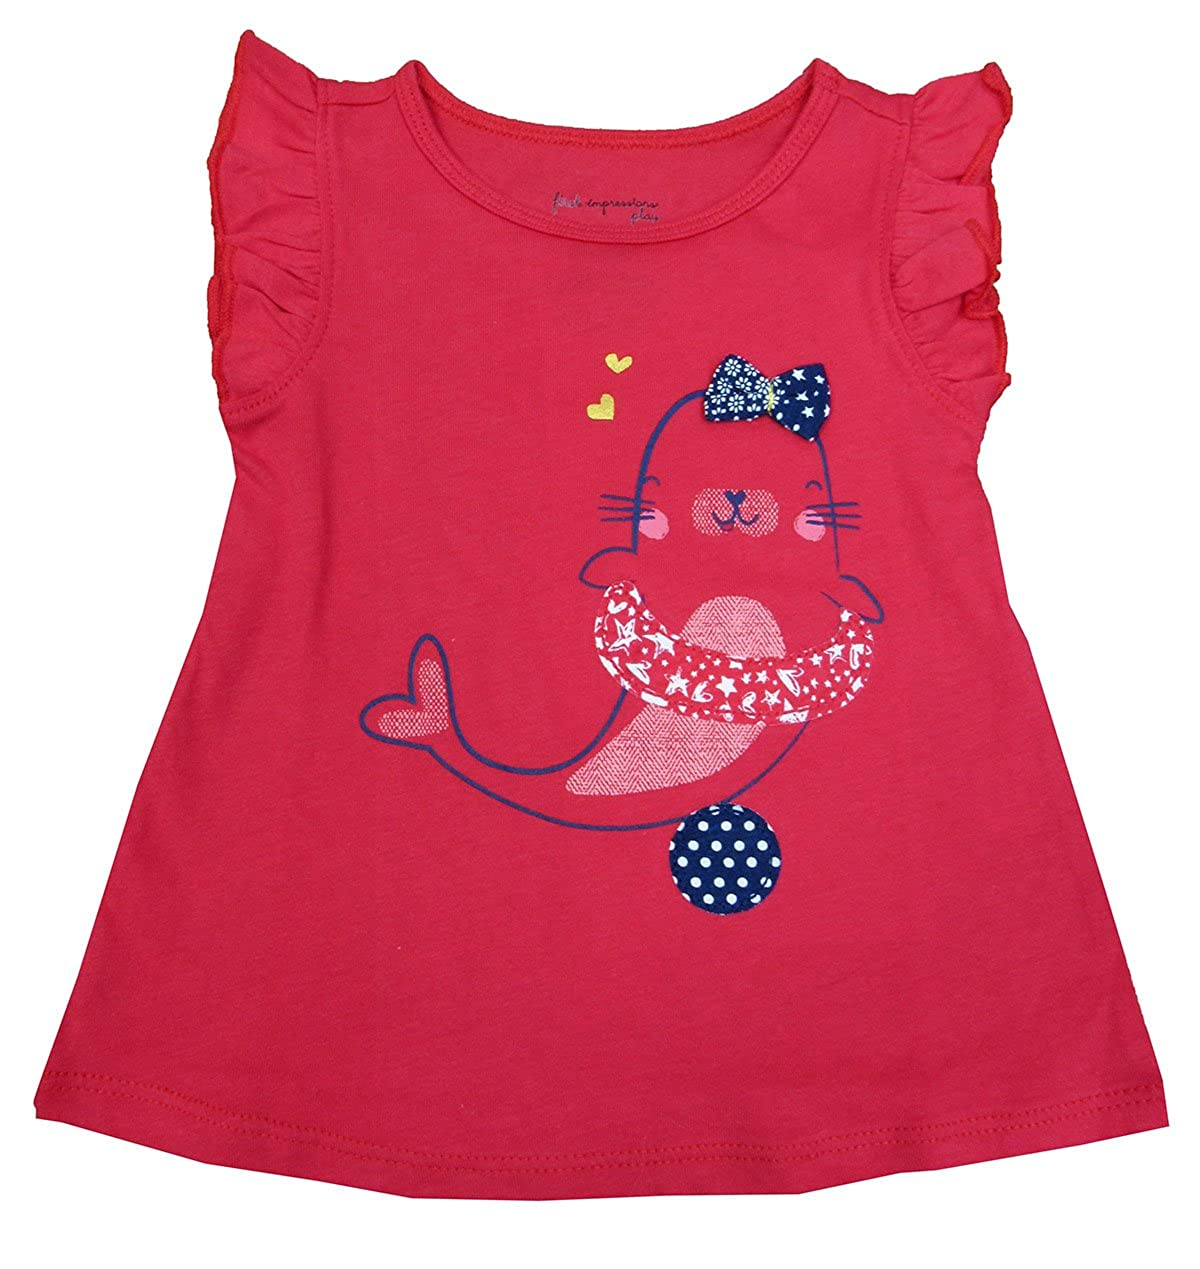 First Impressions Baby Girls Graphic-Print T-Shirt Poppy Field 18 Months